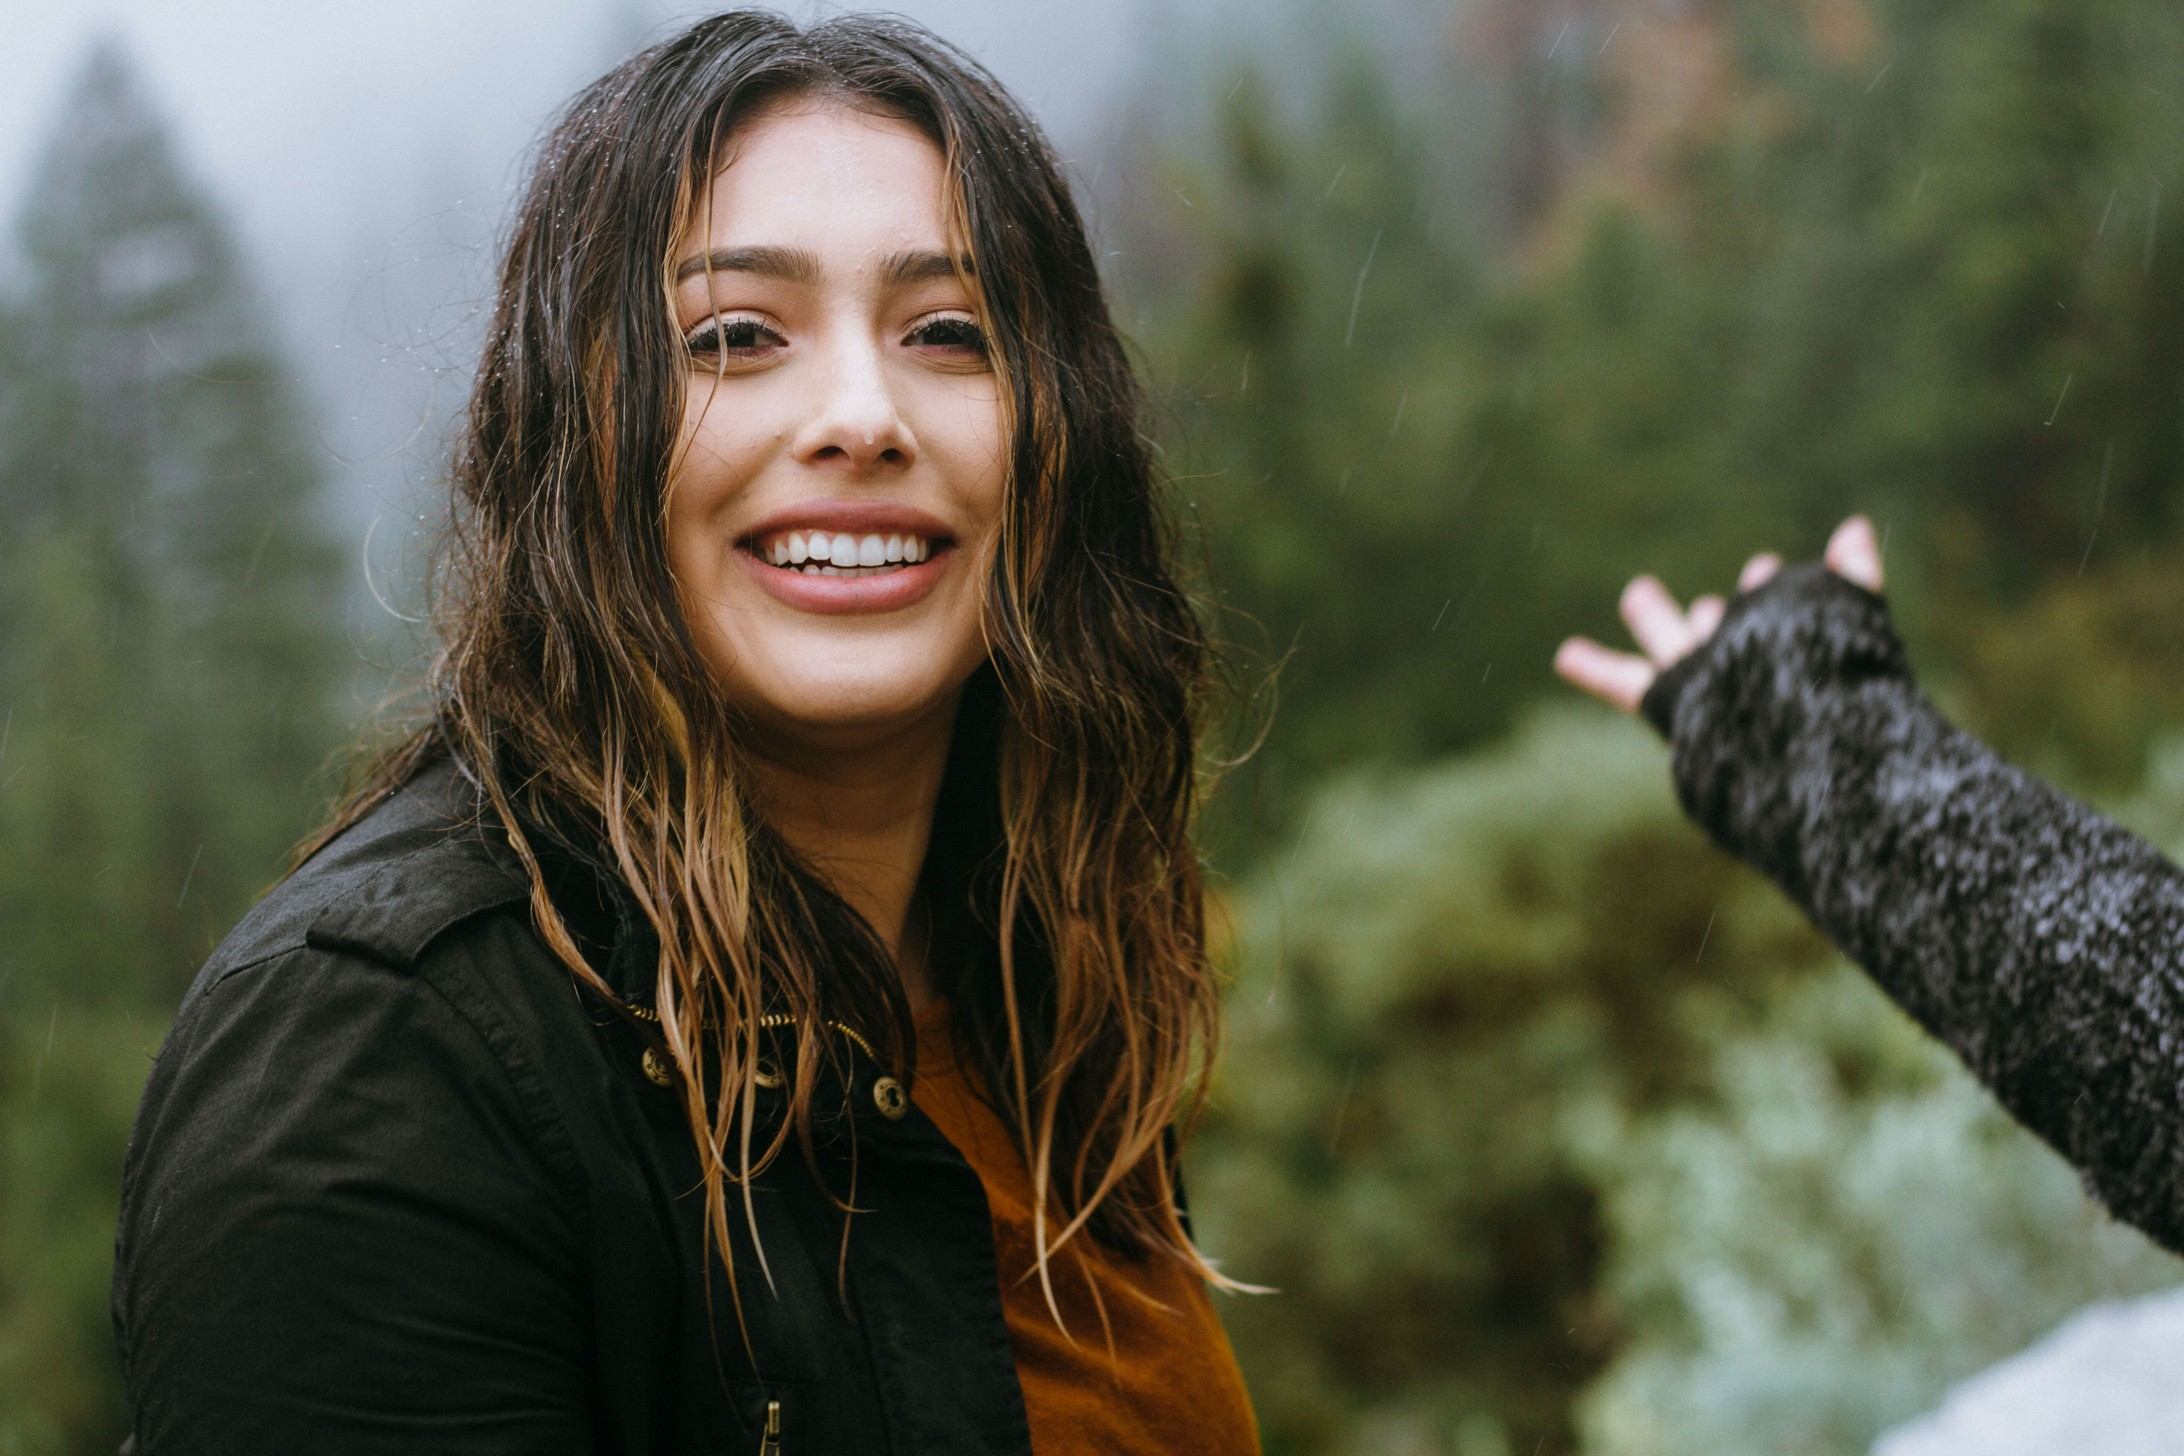 woman standing in the rain with wet hair, trees are pictured behind her.